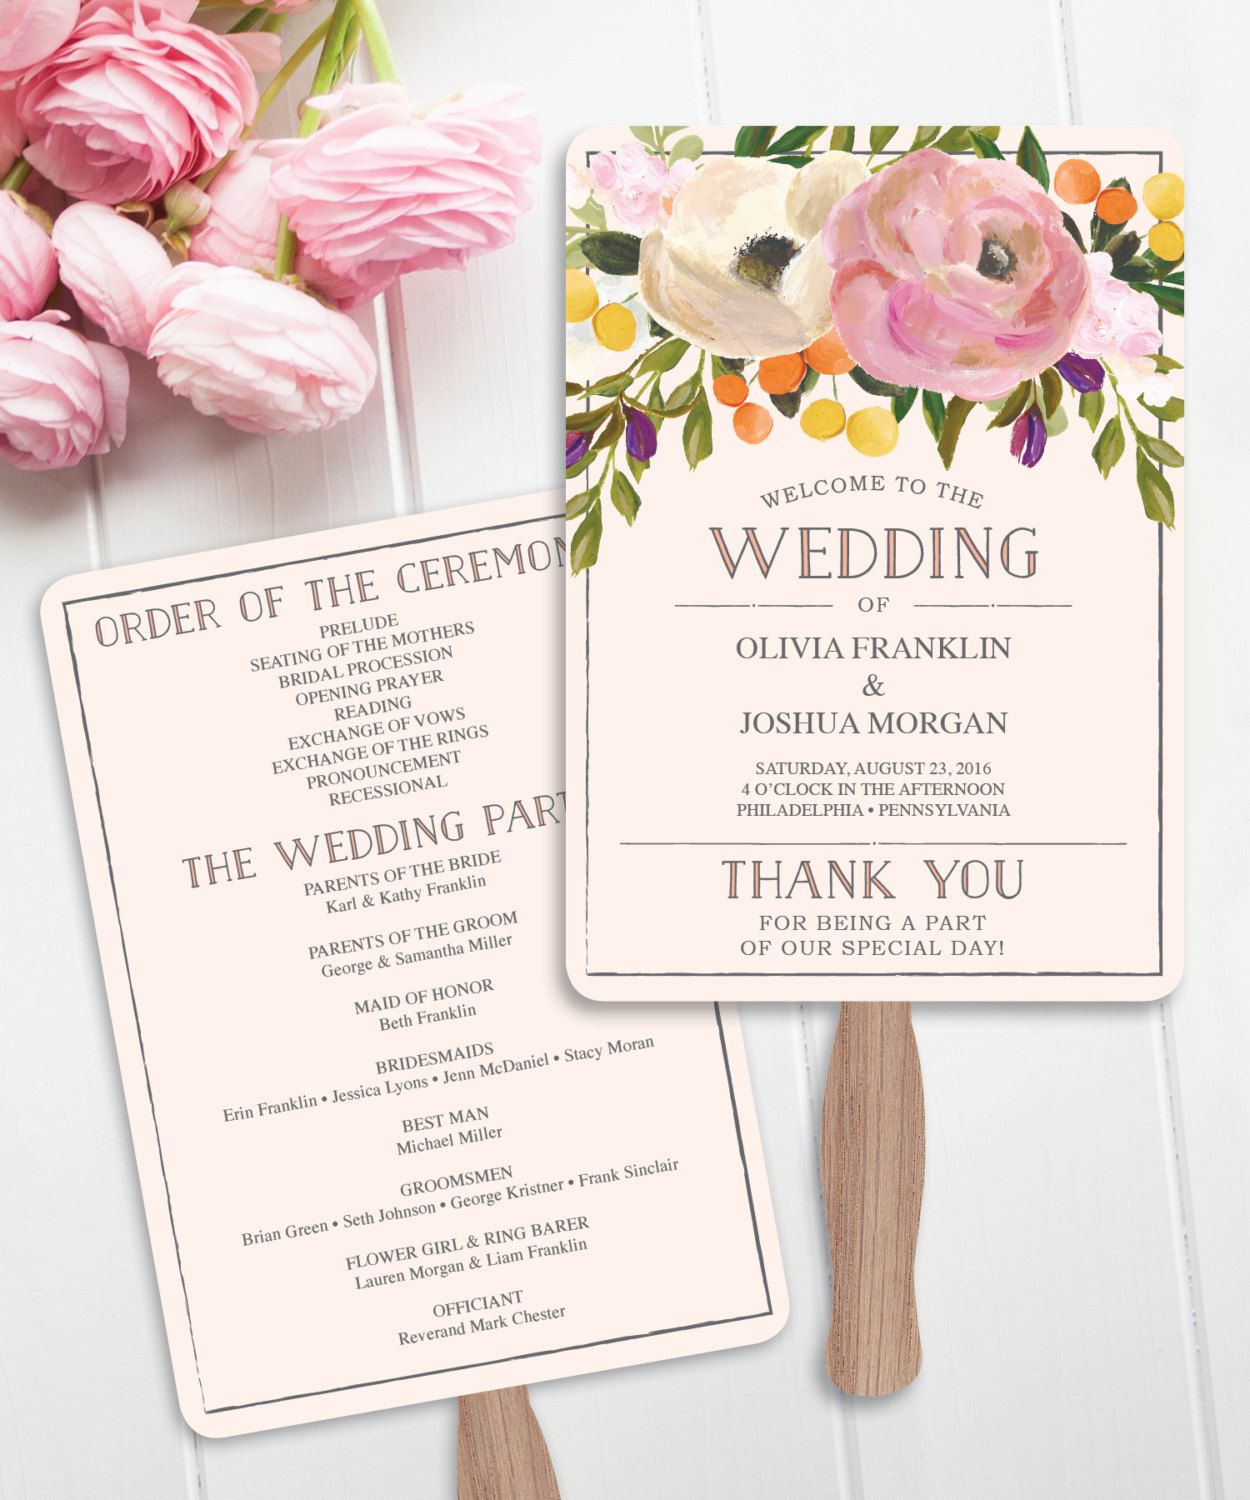 How To Make A Wedding Fan Program Diy Step By Instructions With Photos Creativeuniondesign